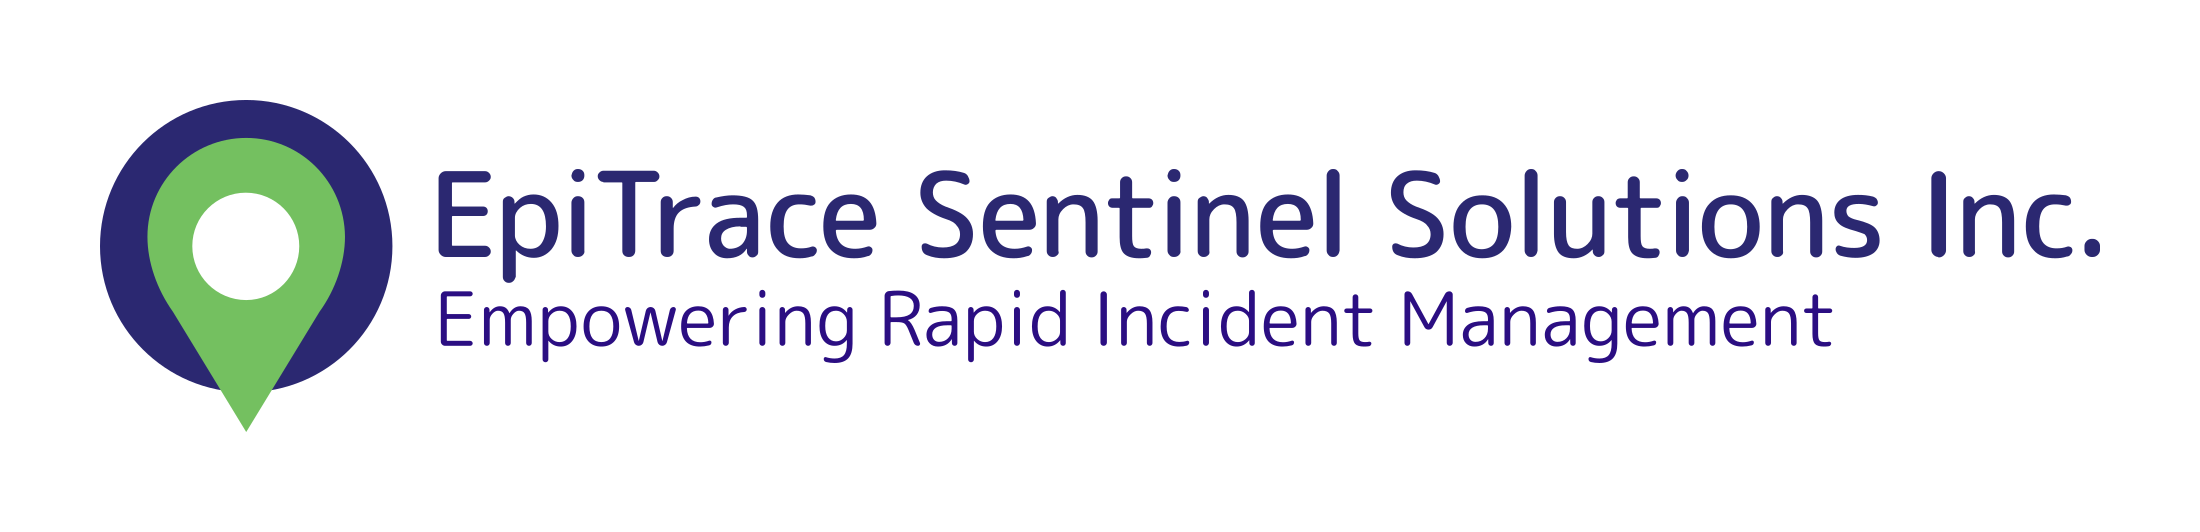 EpiTrace Sentinel Solutions Inc. - Empowering Rapid Incident Management Team